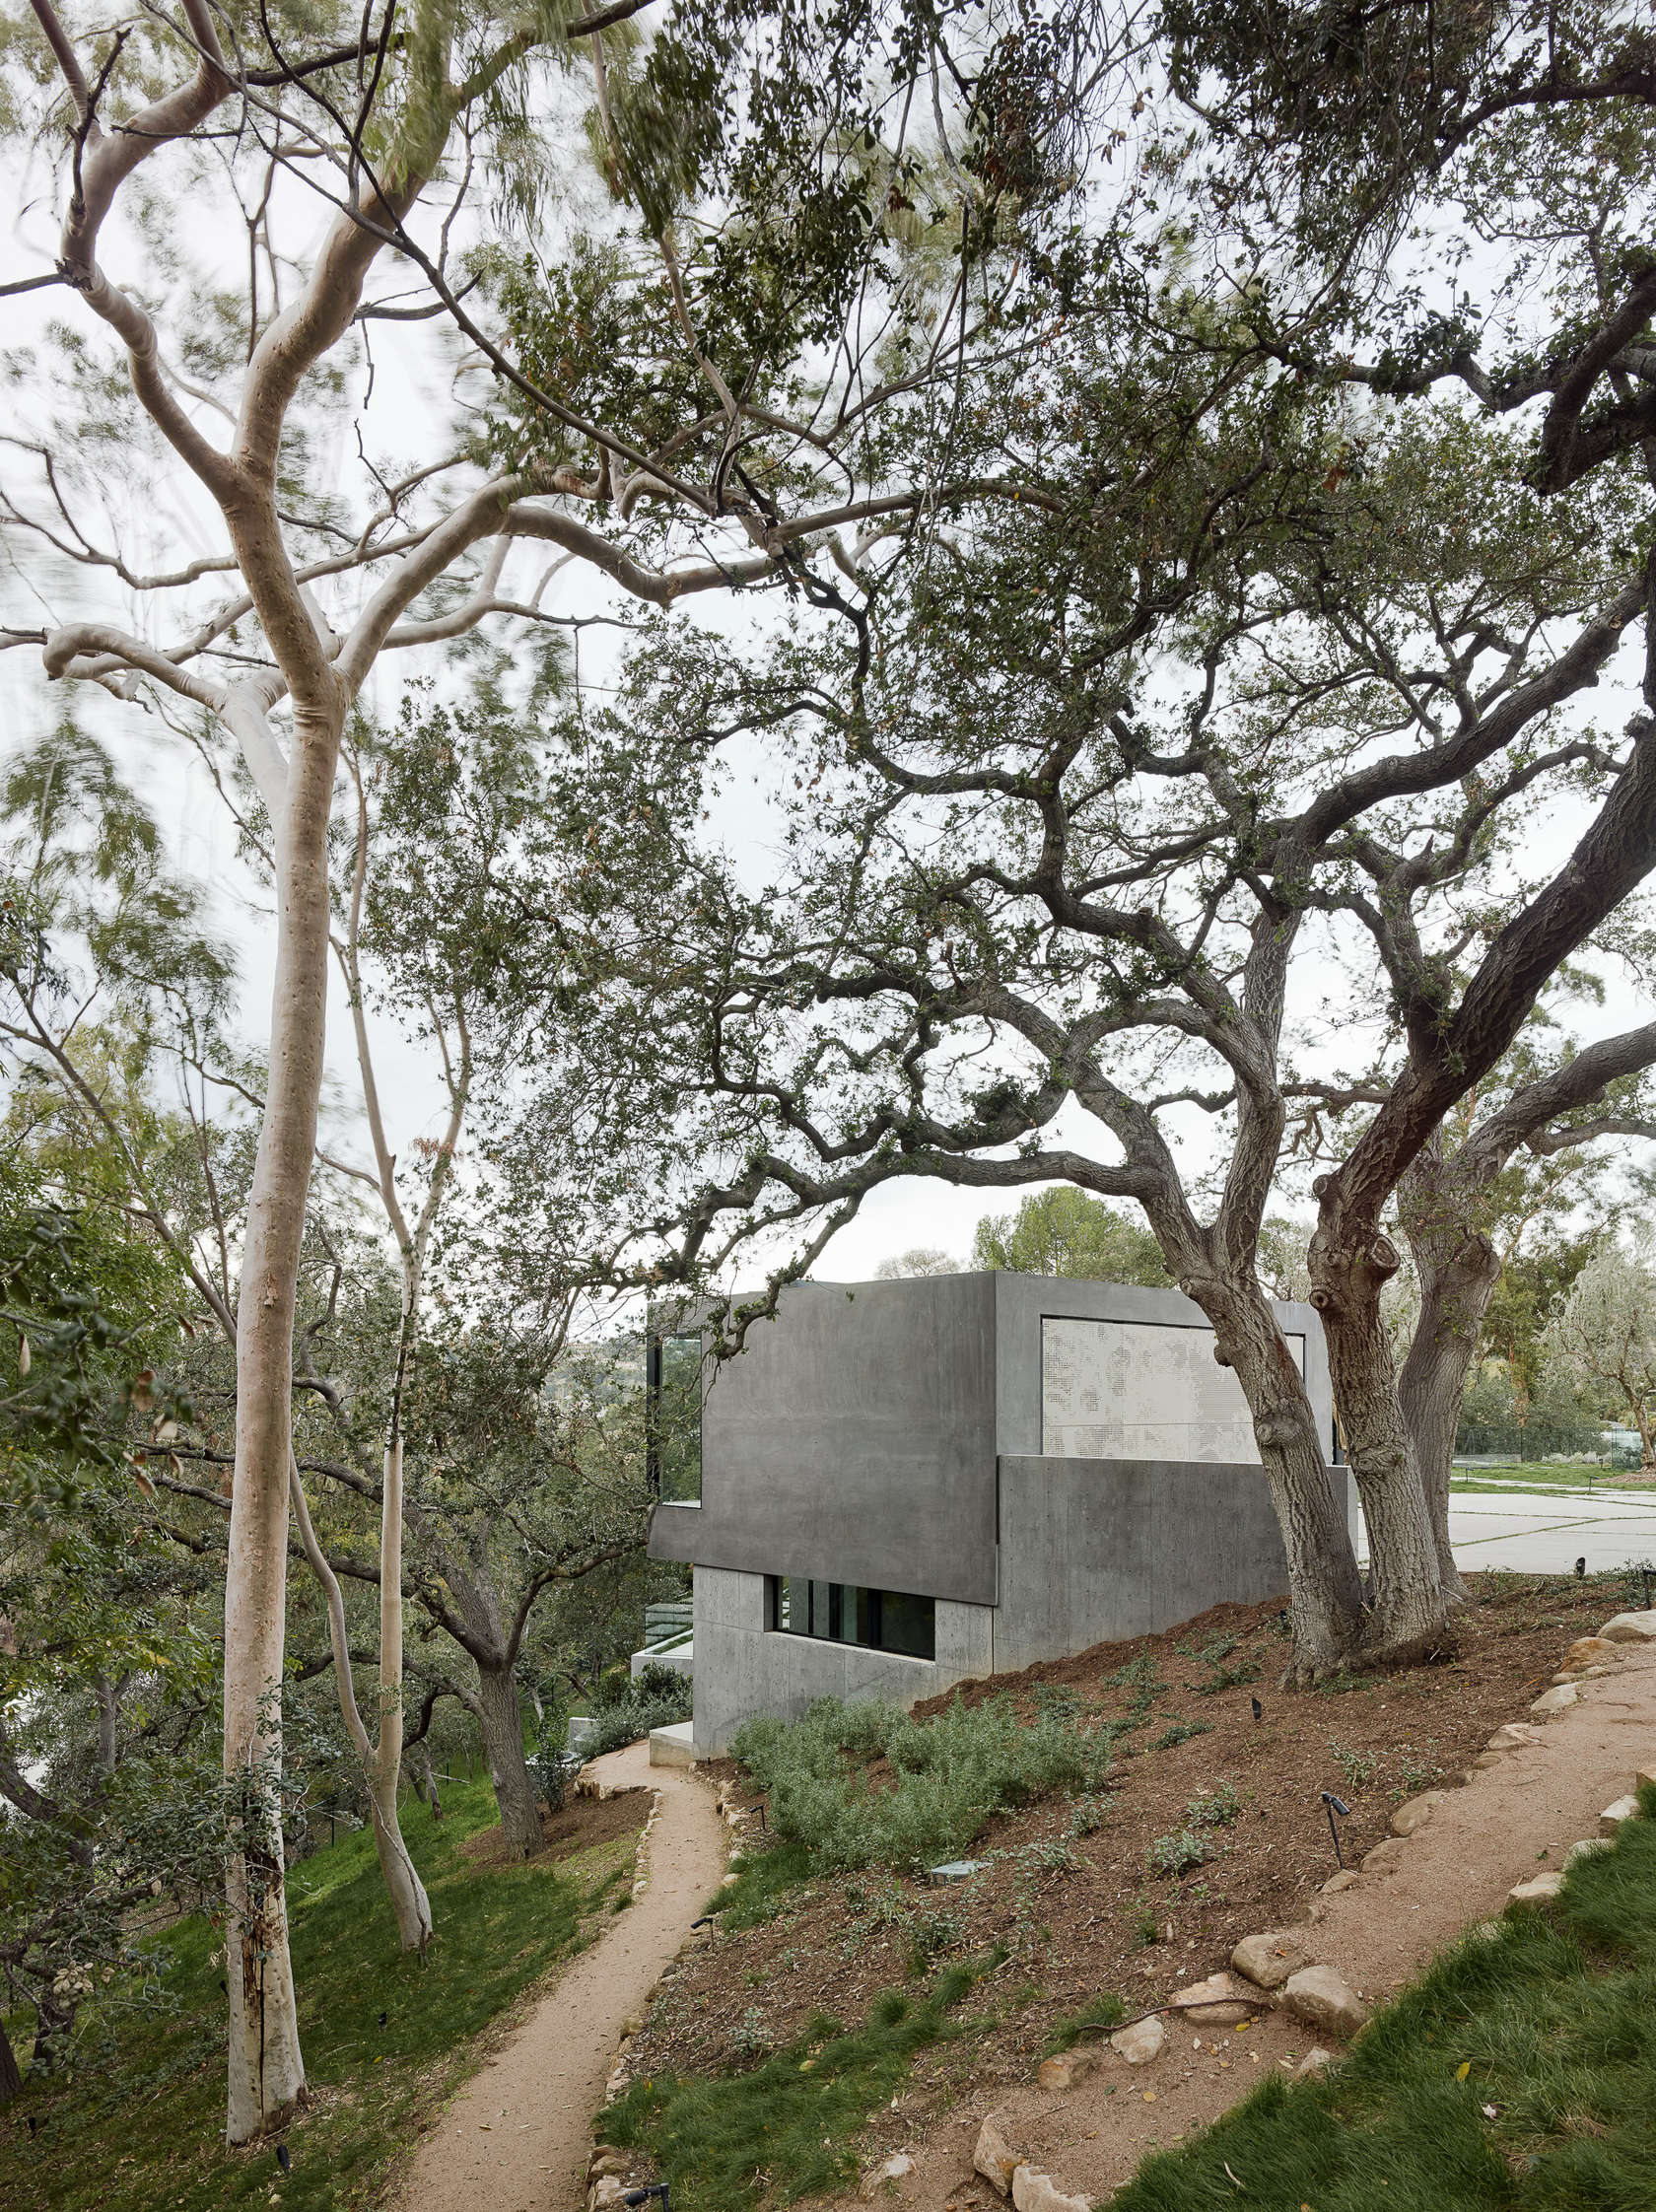 Cocrete Home Exterior - An upside down beverly hills home with a minimalist exterior